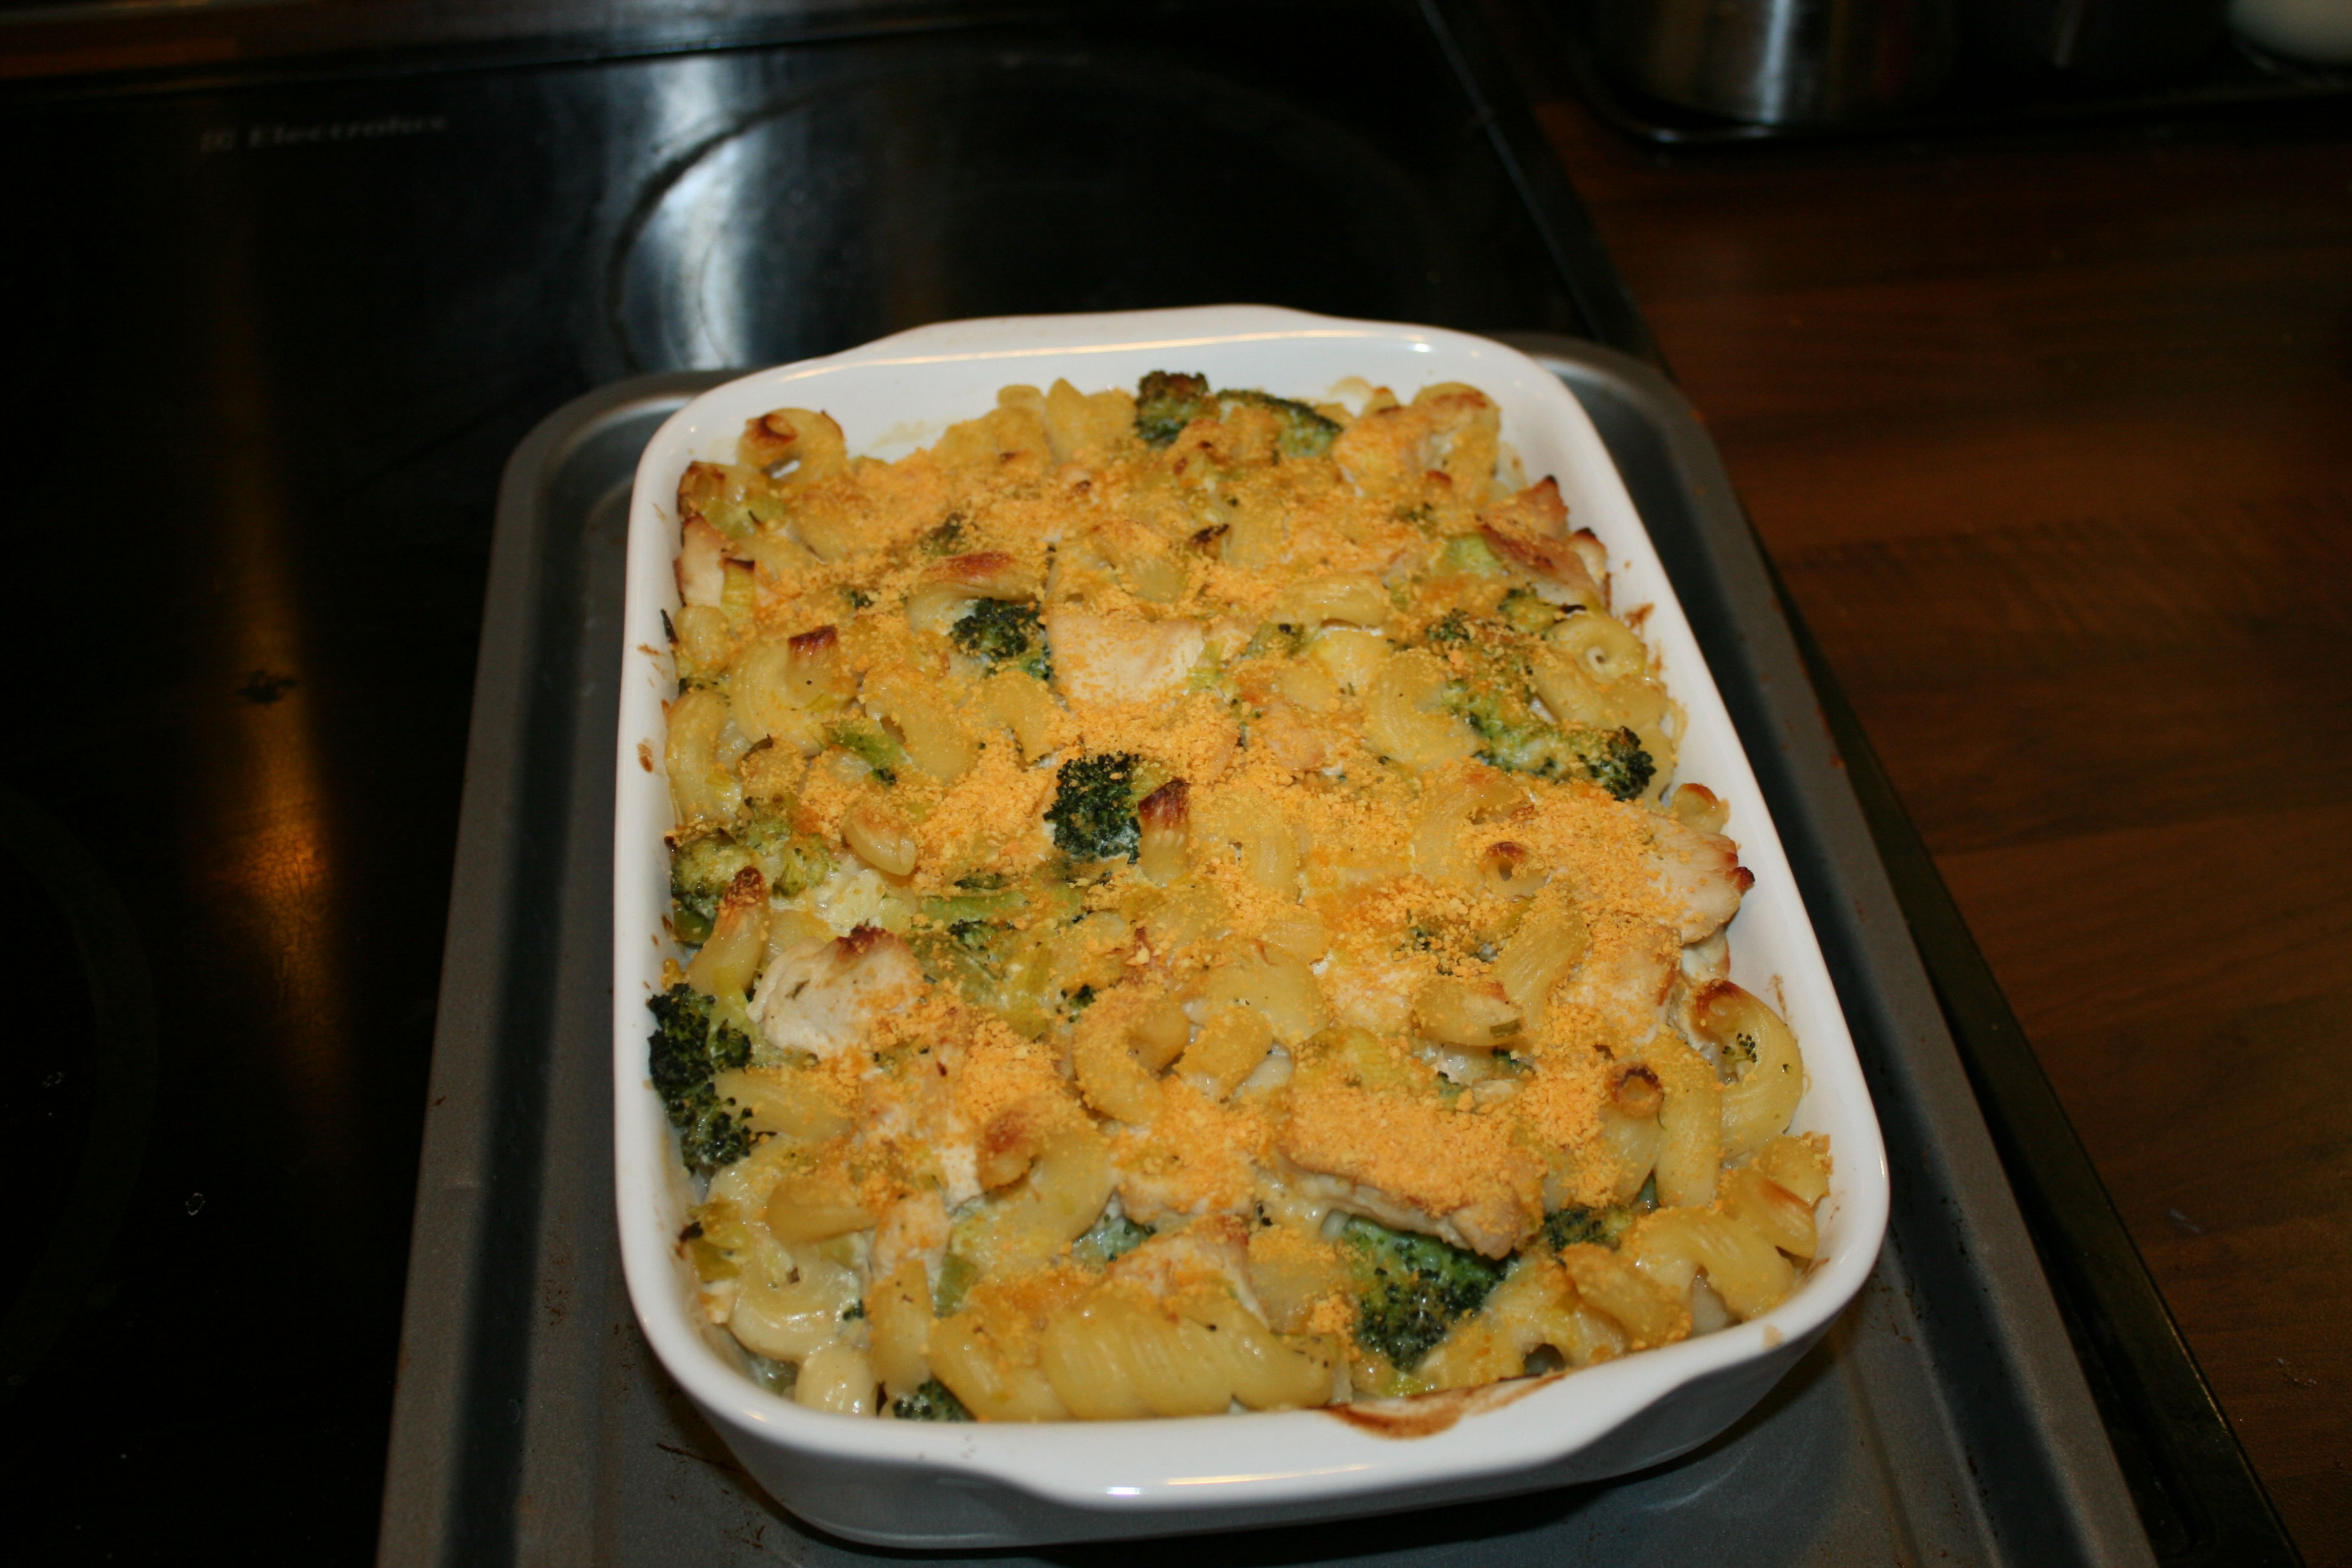 Chicken, leek and broccoli creamy pasta bake recipe - All ...